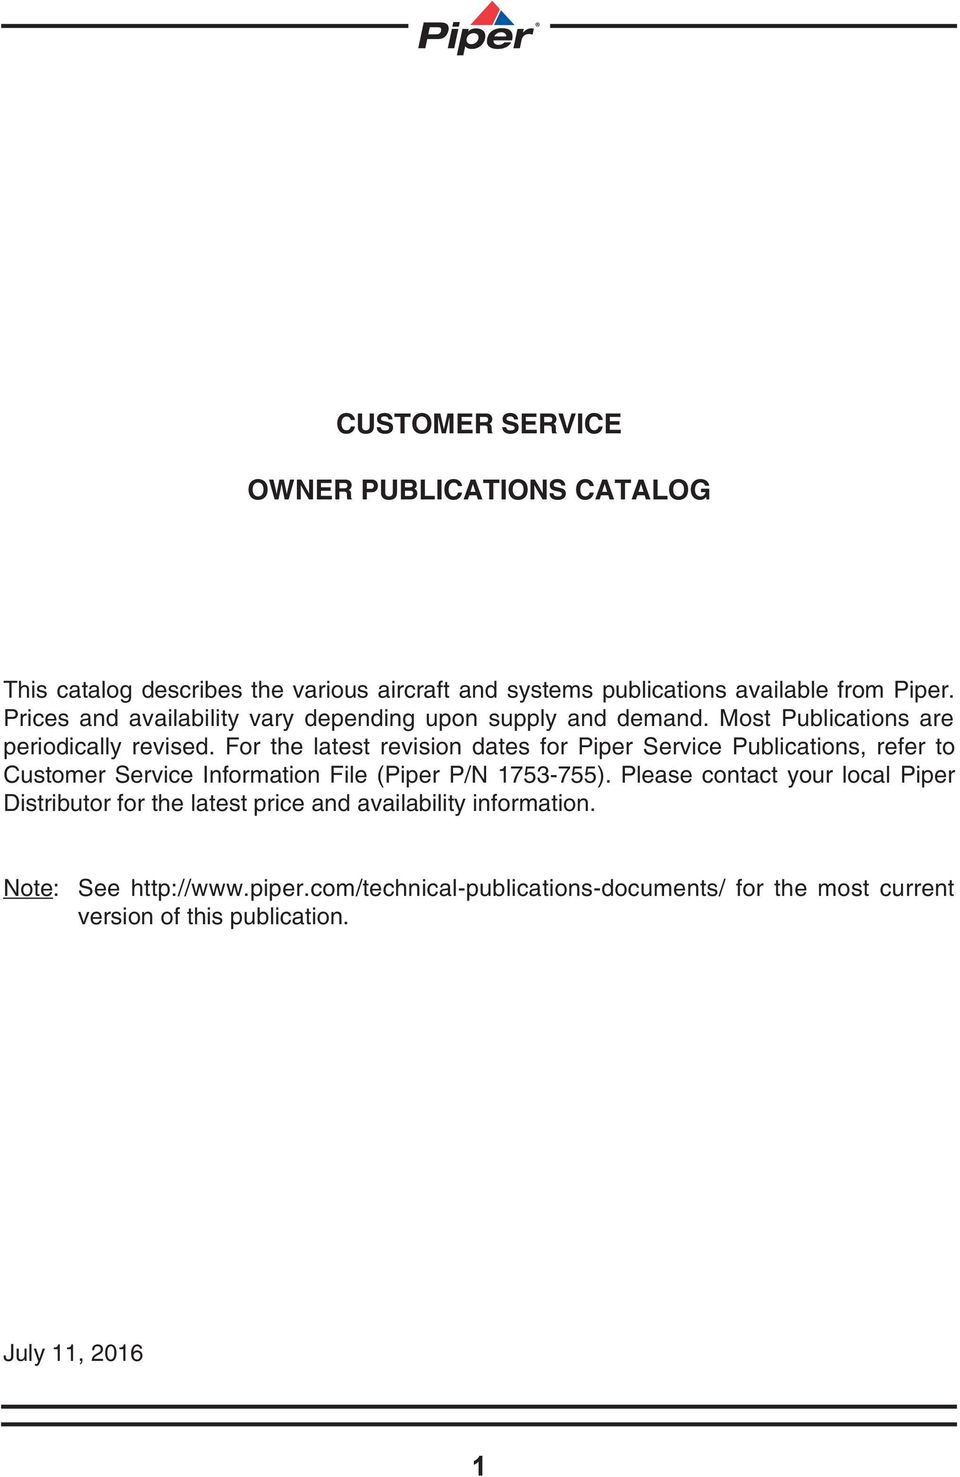 Customer Service Owner Publications Catalog Pdf Piper Seneca Wiring Diagram For The Latest Revision Dates Refer To Information File